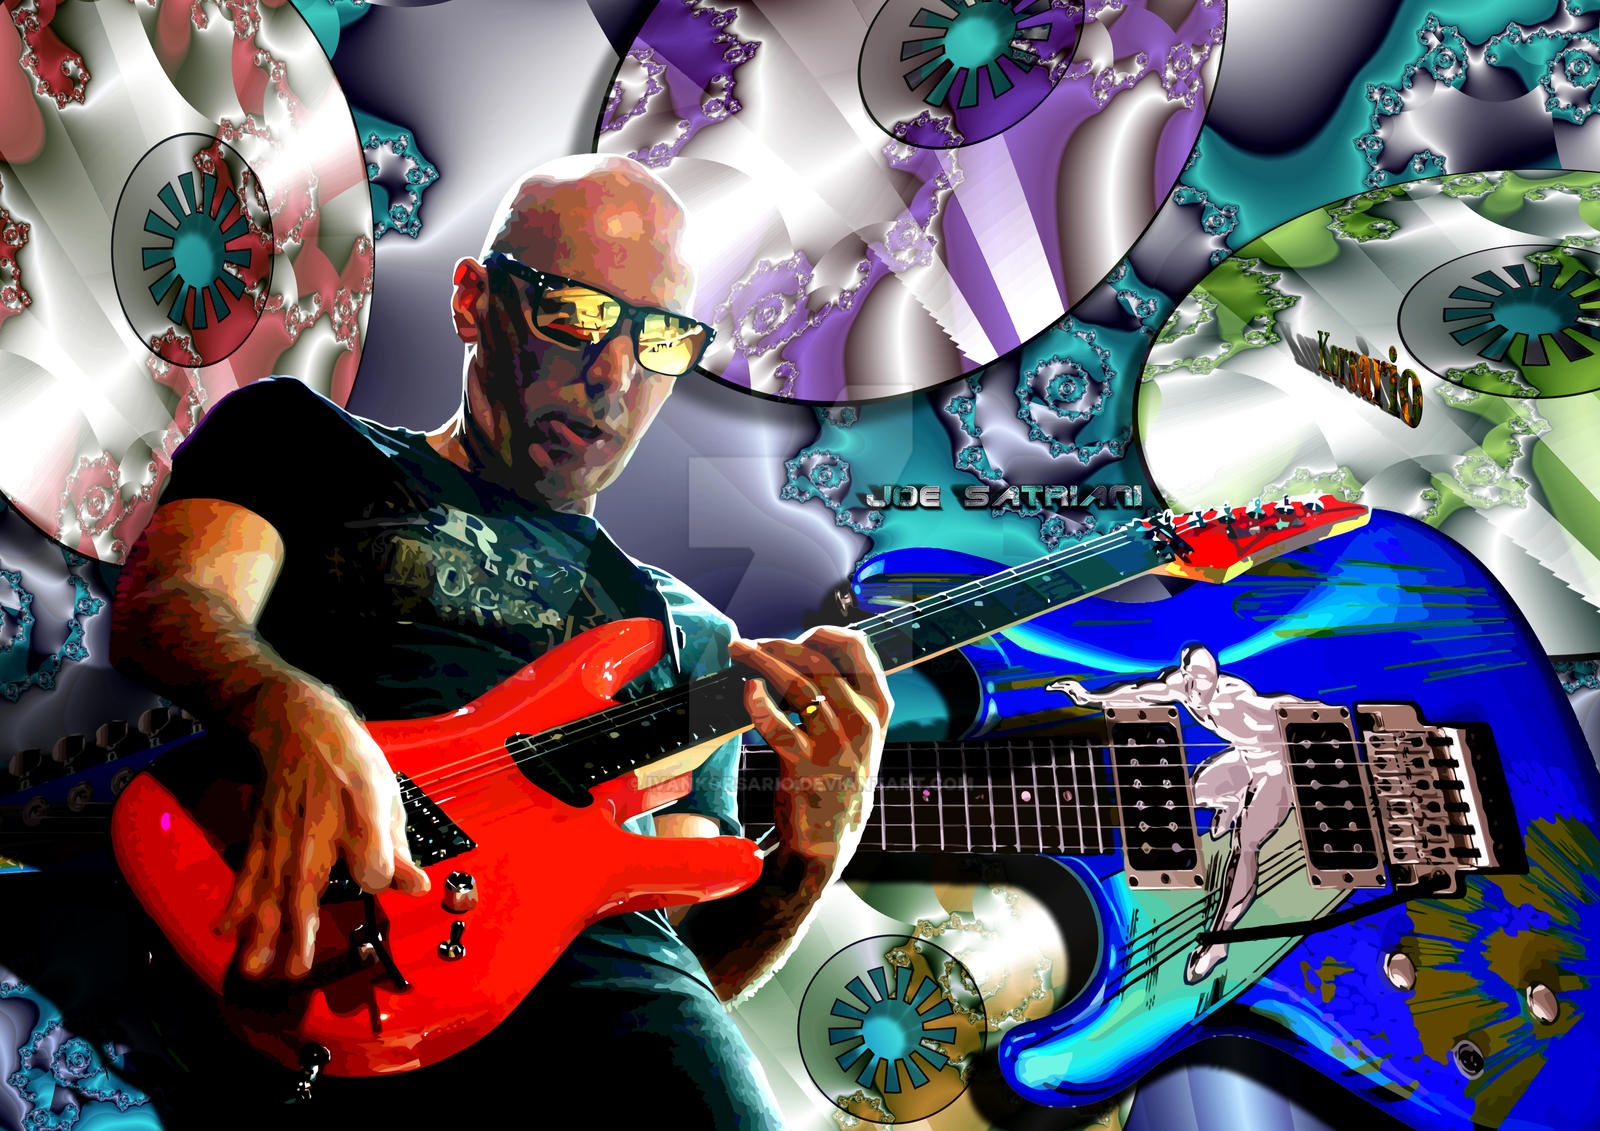 Joe Satriani by ivankorsario